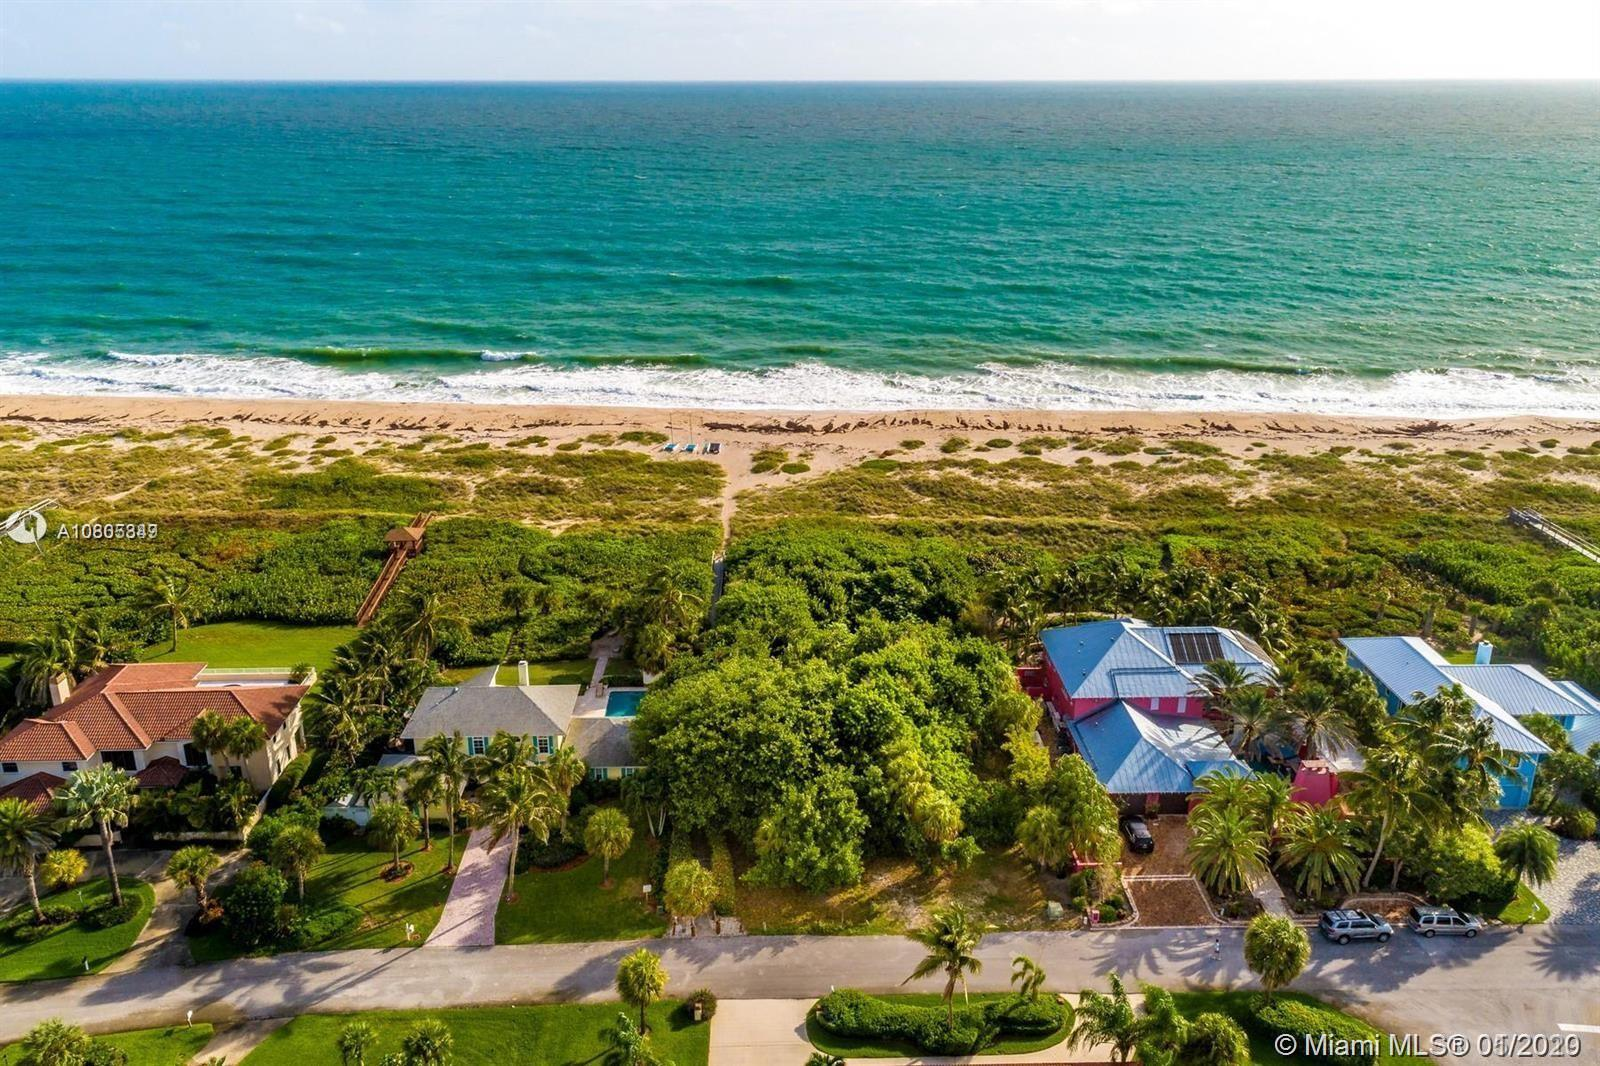 """Spectacular Atlantic Oceanfront Lush Vacant Lot located in the sought after private gated community of """"The Dunes.""""  This rare opportunity homesite is located amongst multi-million dollar properties on one of Vero Beach's best beach areas of South Beach.  A magnificent property that sets the stage for the perfect dream home where panoramic ocean views can be enjoyed by everyone.  Located near shopping, restaurants, schools, supermarkets, houses of worship, gallery's and much more."""